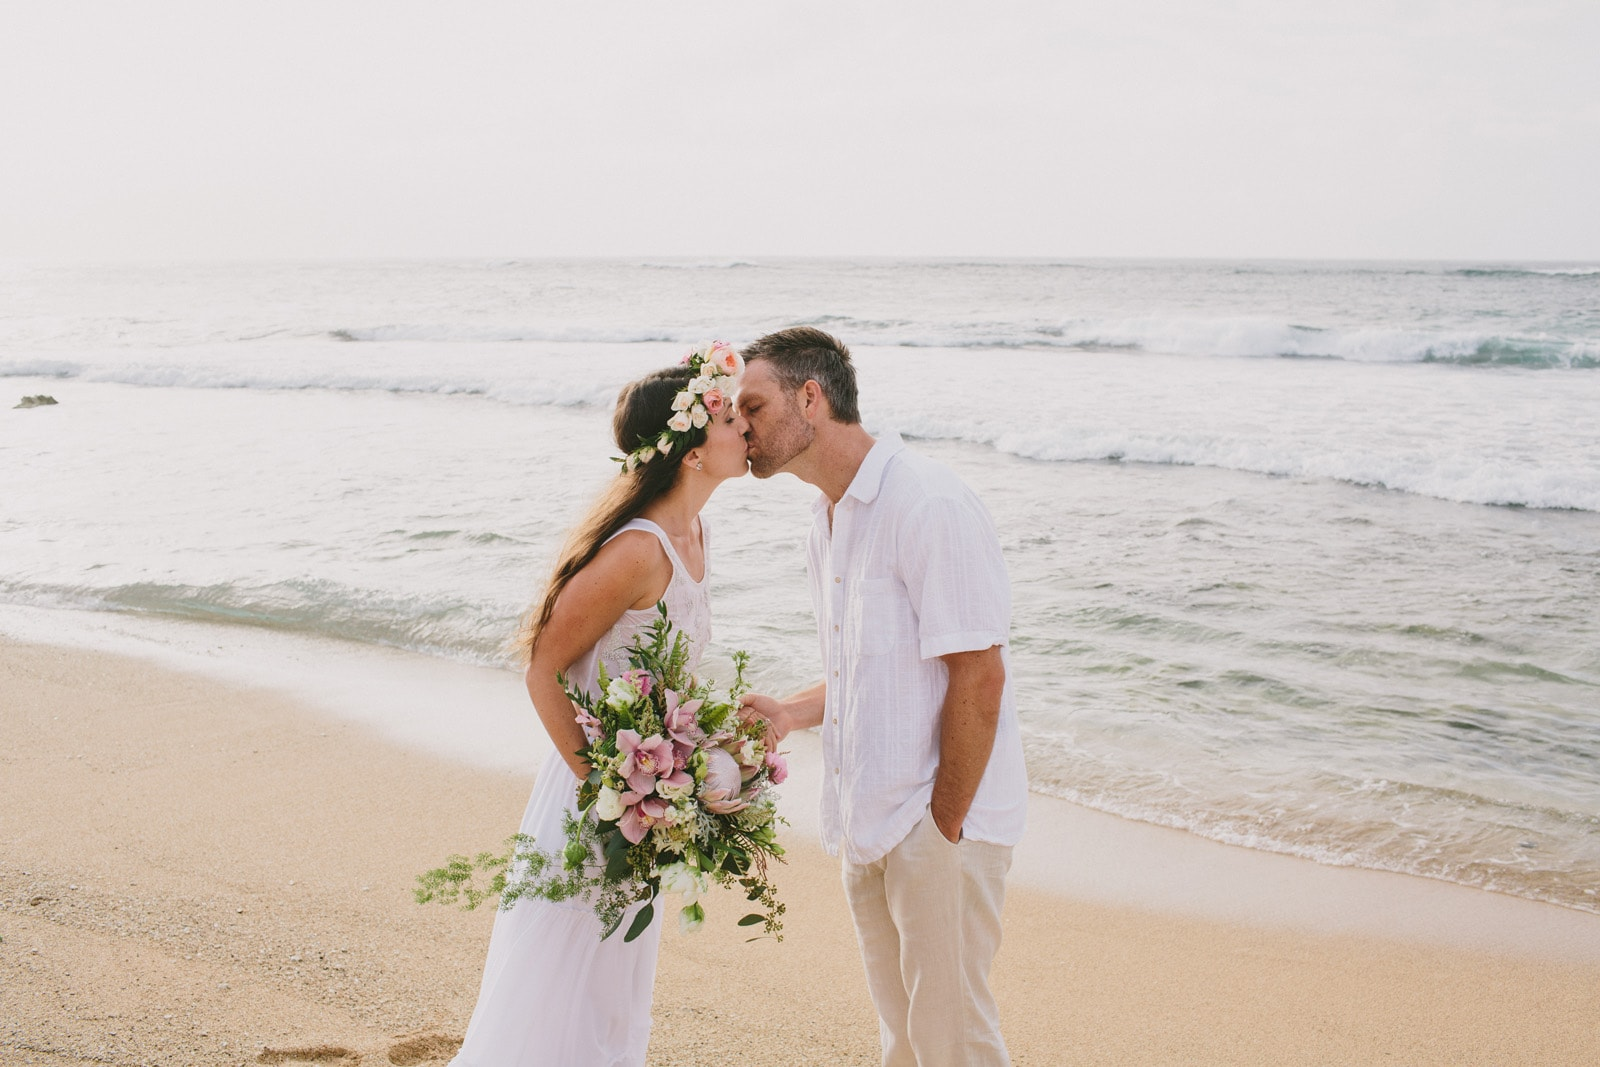 Maui_Wedding_Wailea_Kapalua_Hawaii_Photographer_006